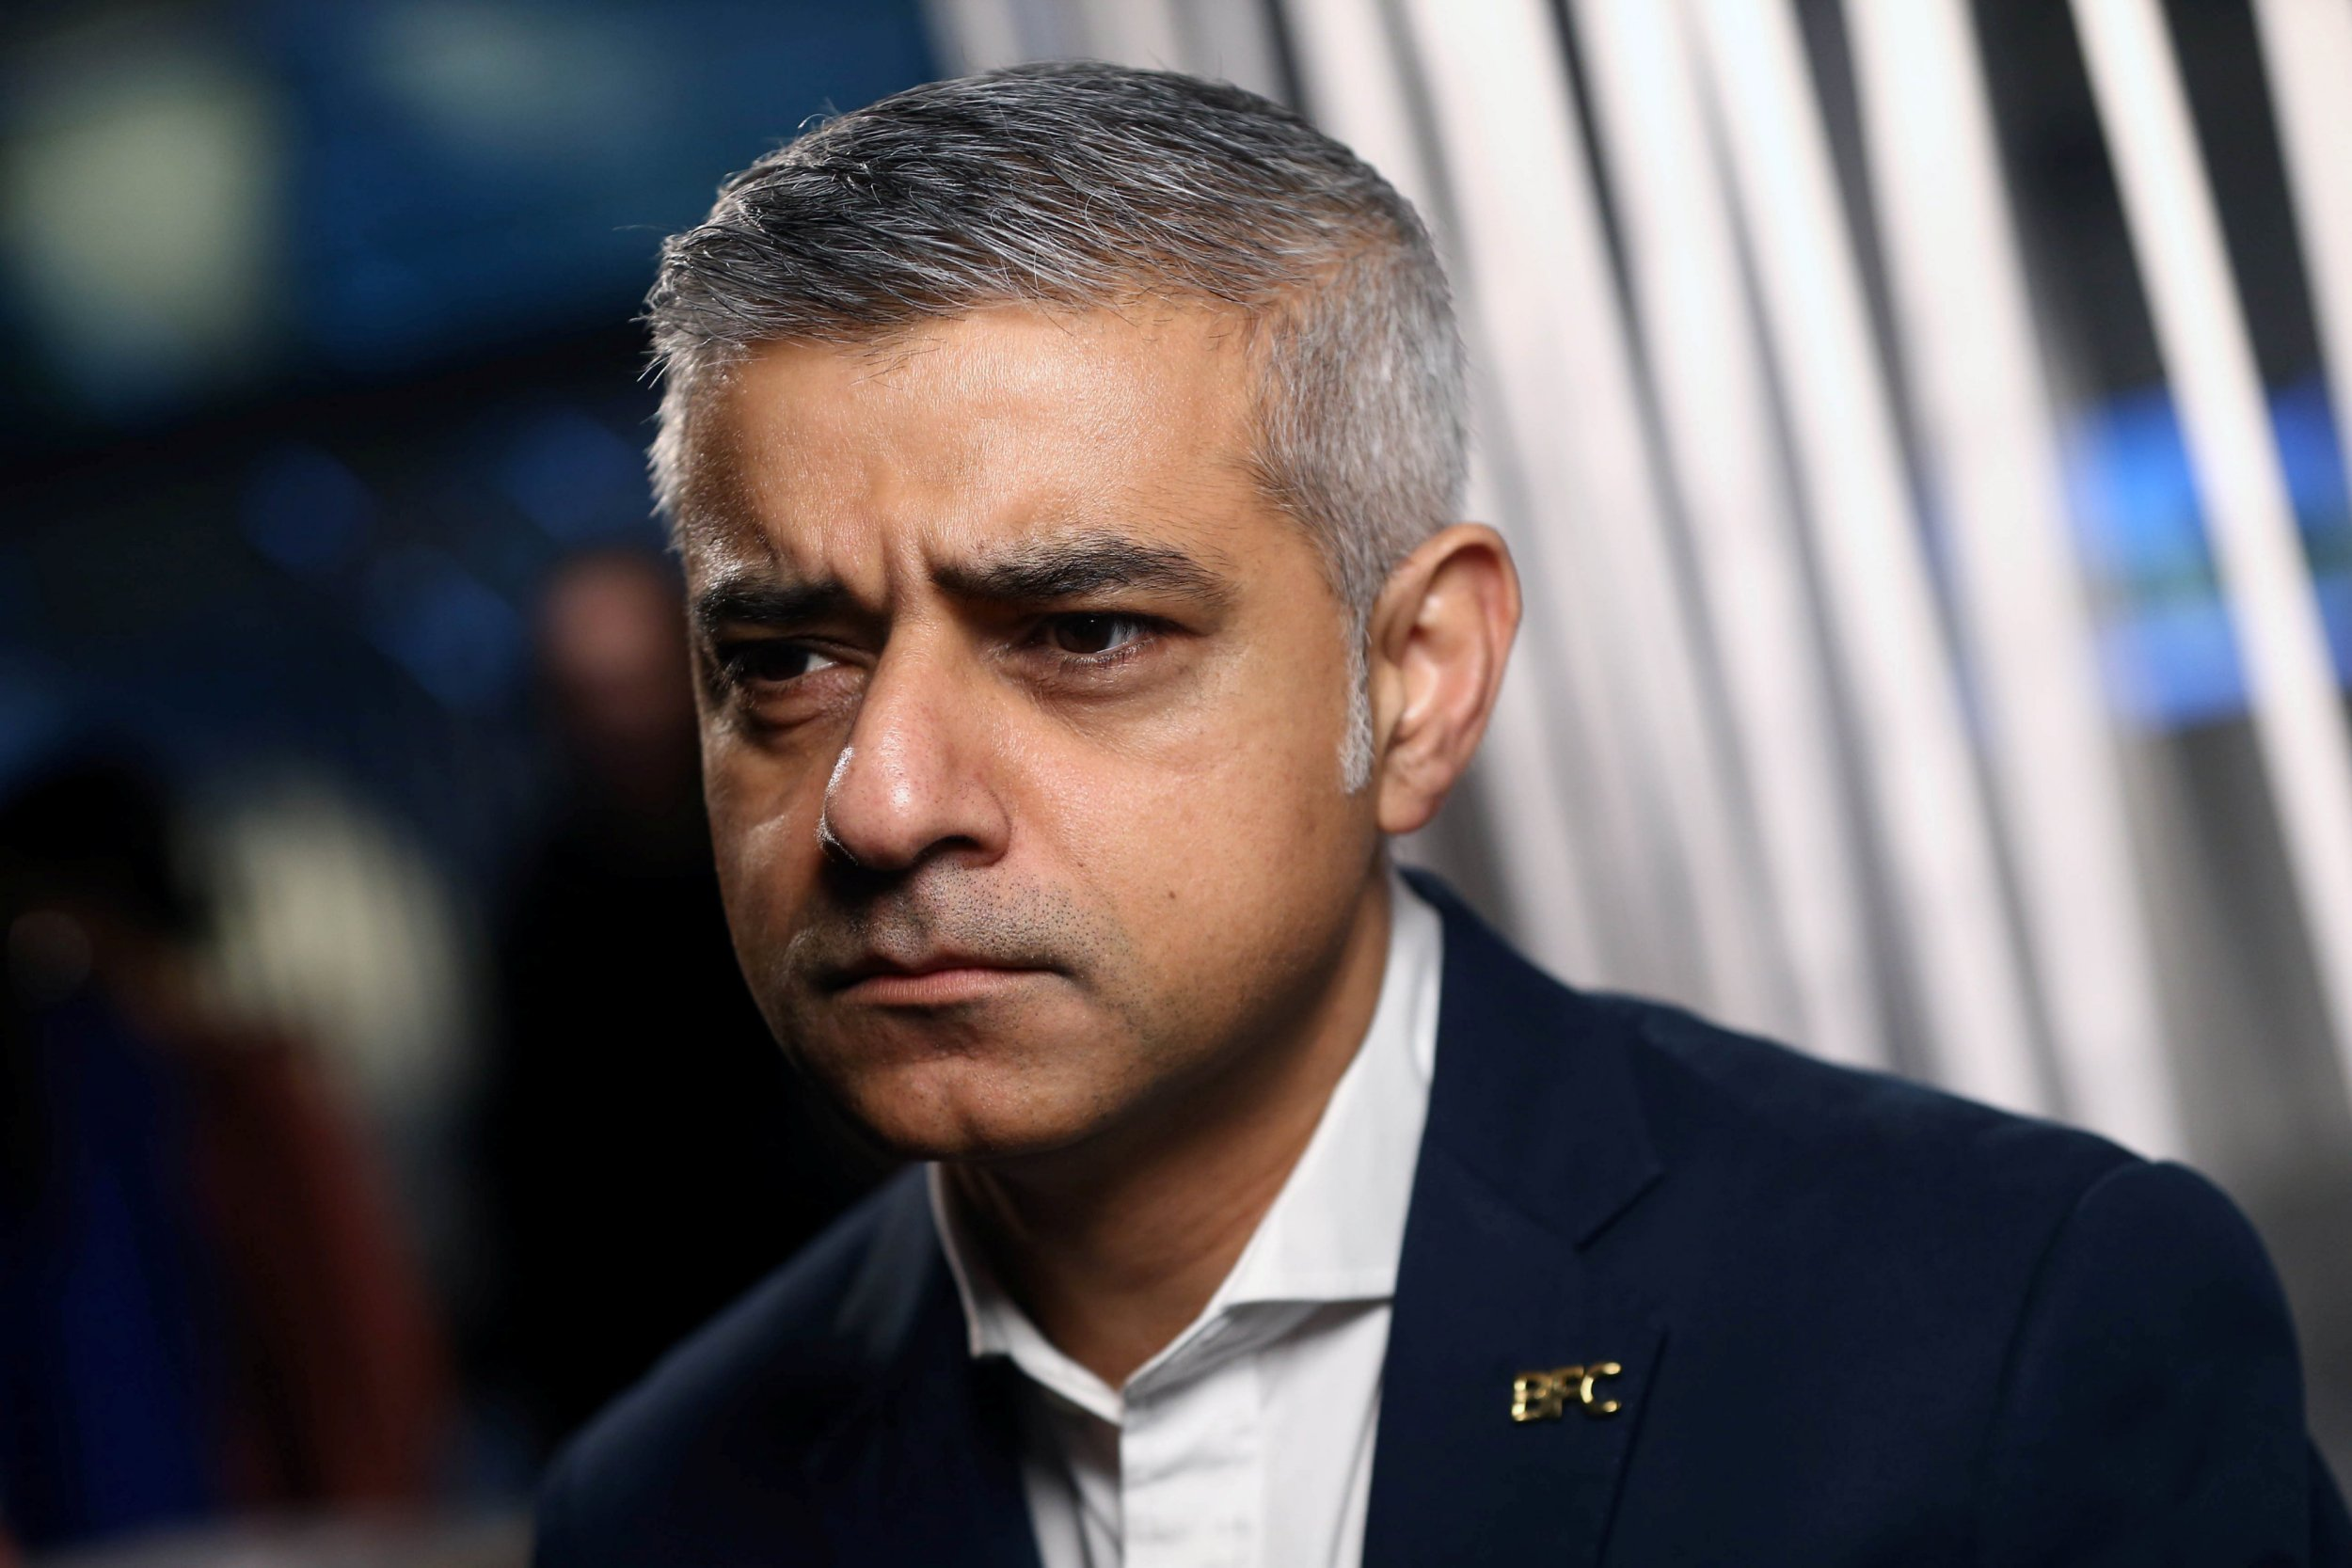 Mayor of London Sadiq Khan speaks during a television interview during London Fashion Week Men's 2017 in London, Britain January 6, 2017. REUTERS/Neil Hall